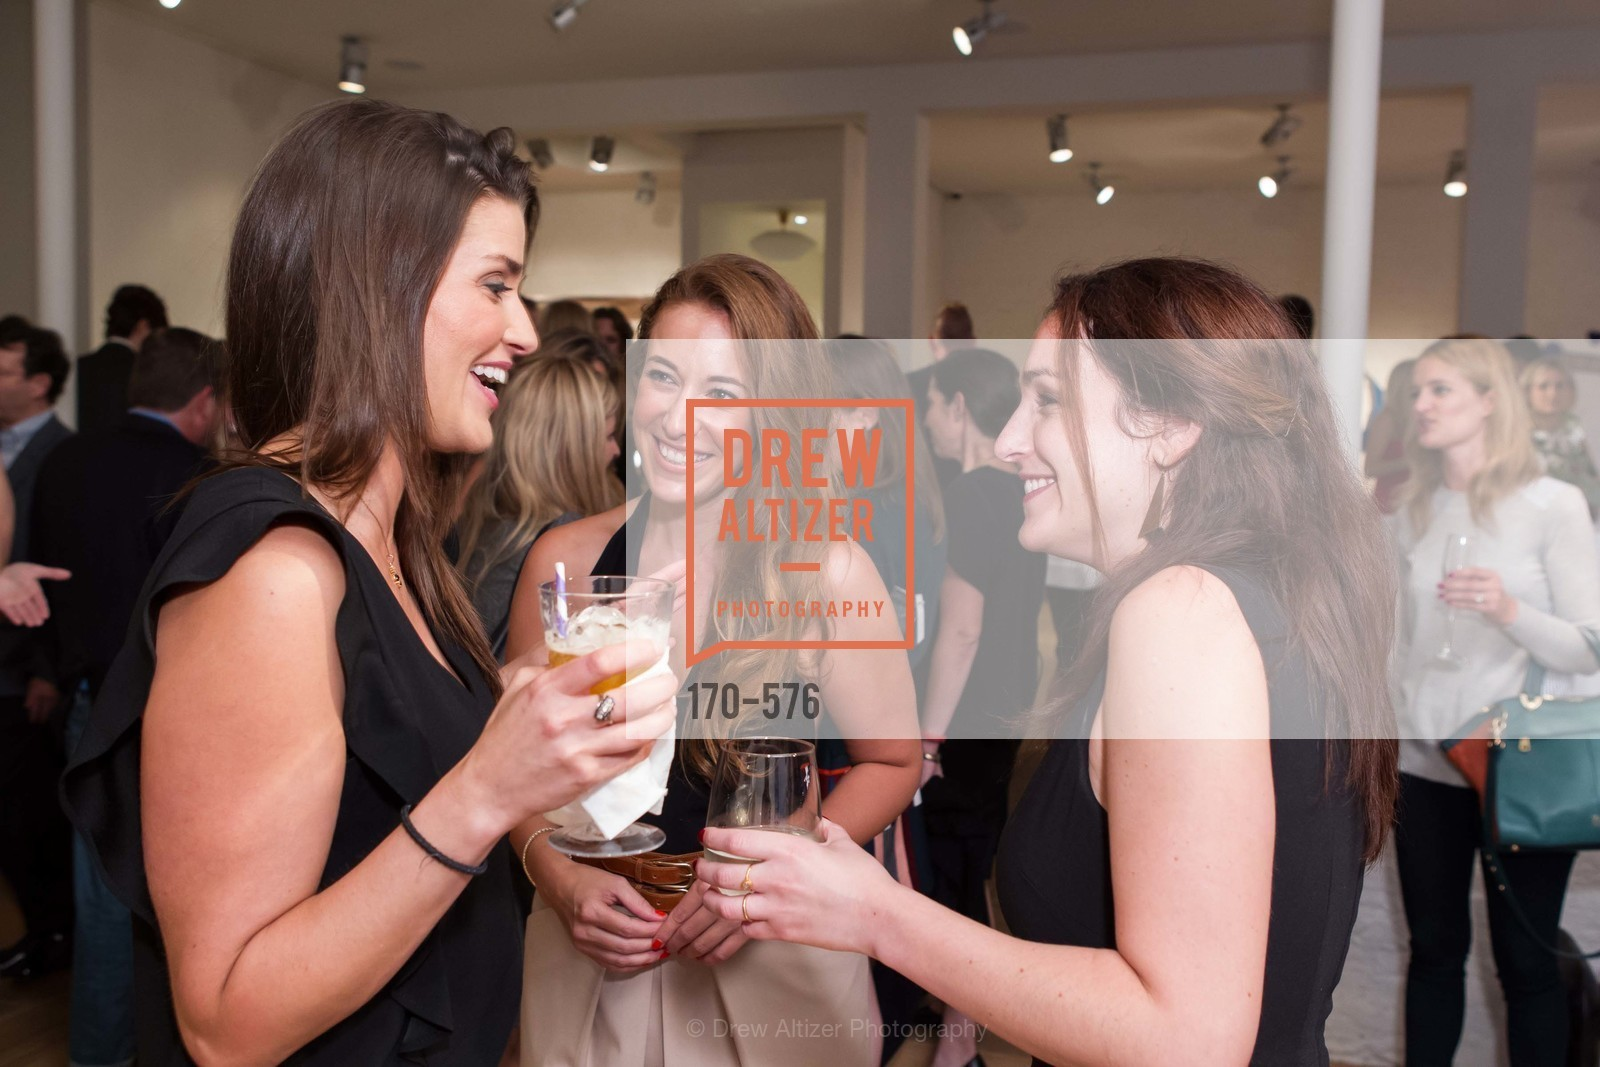 Meredith Kendall, Schuyler Hudak, Kate Botler, SF FALL ANTIQUES SHOW Designer's Circle Cocktail Party at HEWN, US, September 23rd, 2014,Drew Altizer, Drew Altizer Photography, full-service event agency, private events, San Francisco photographer, photographer California